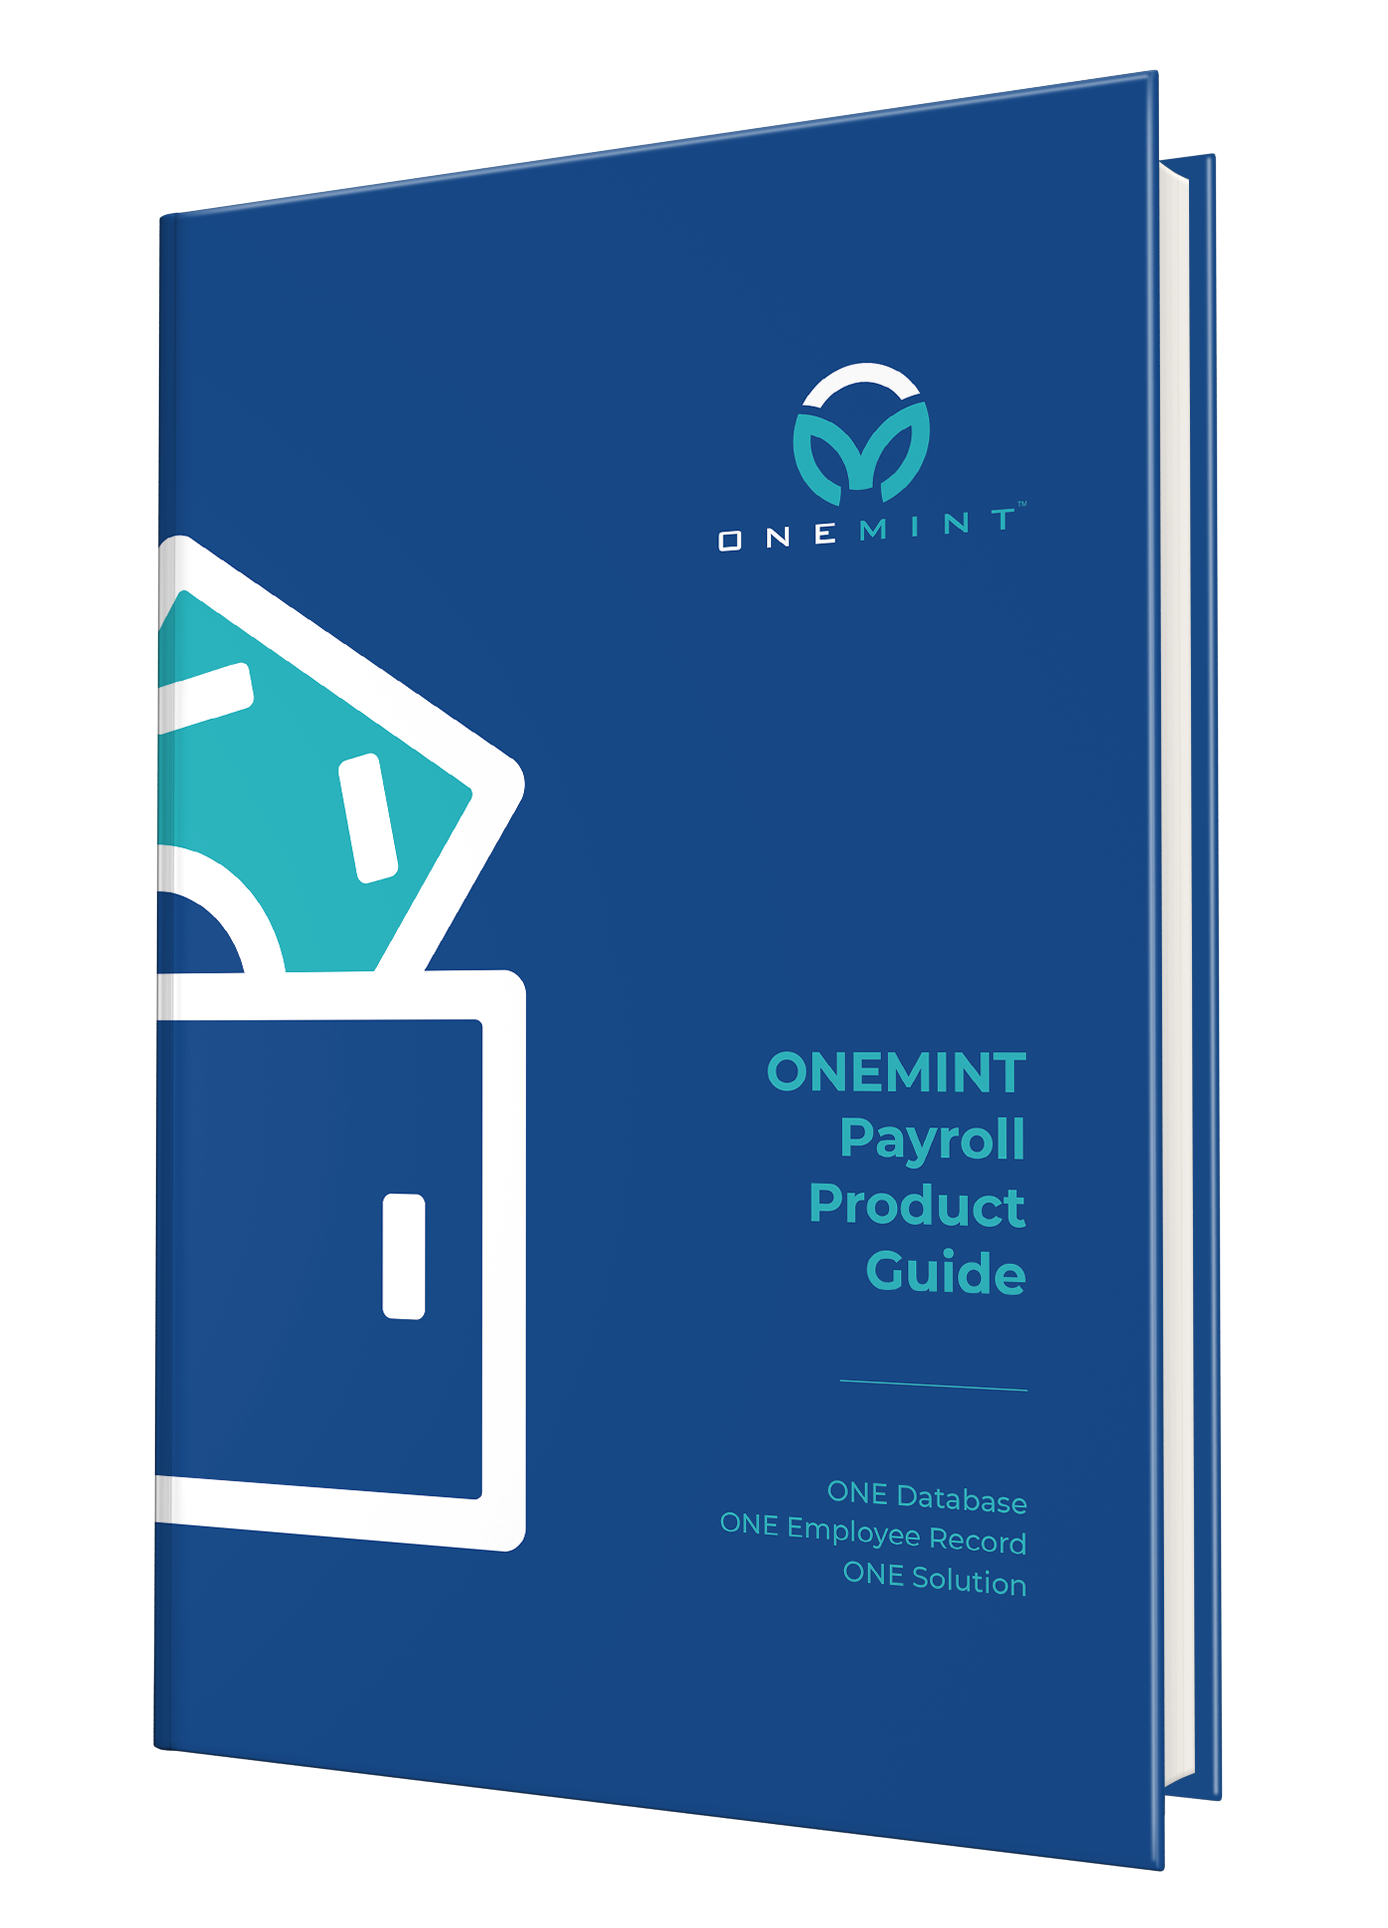 onemint-payroll-product-guide-2018.png